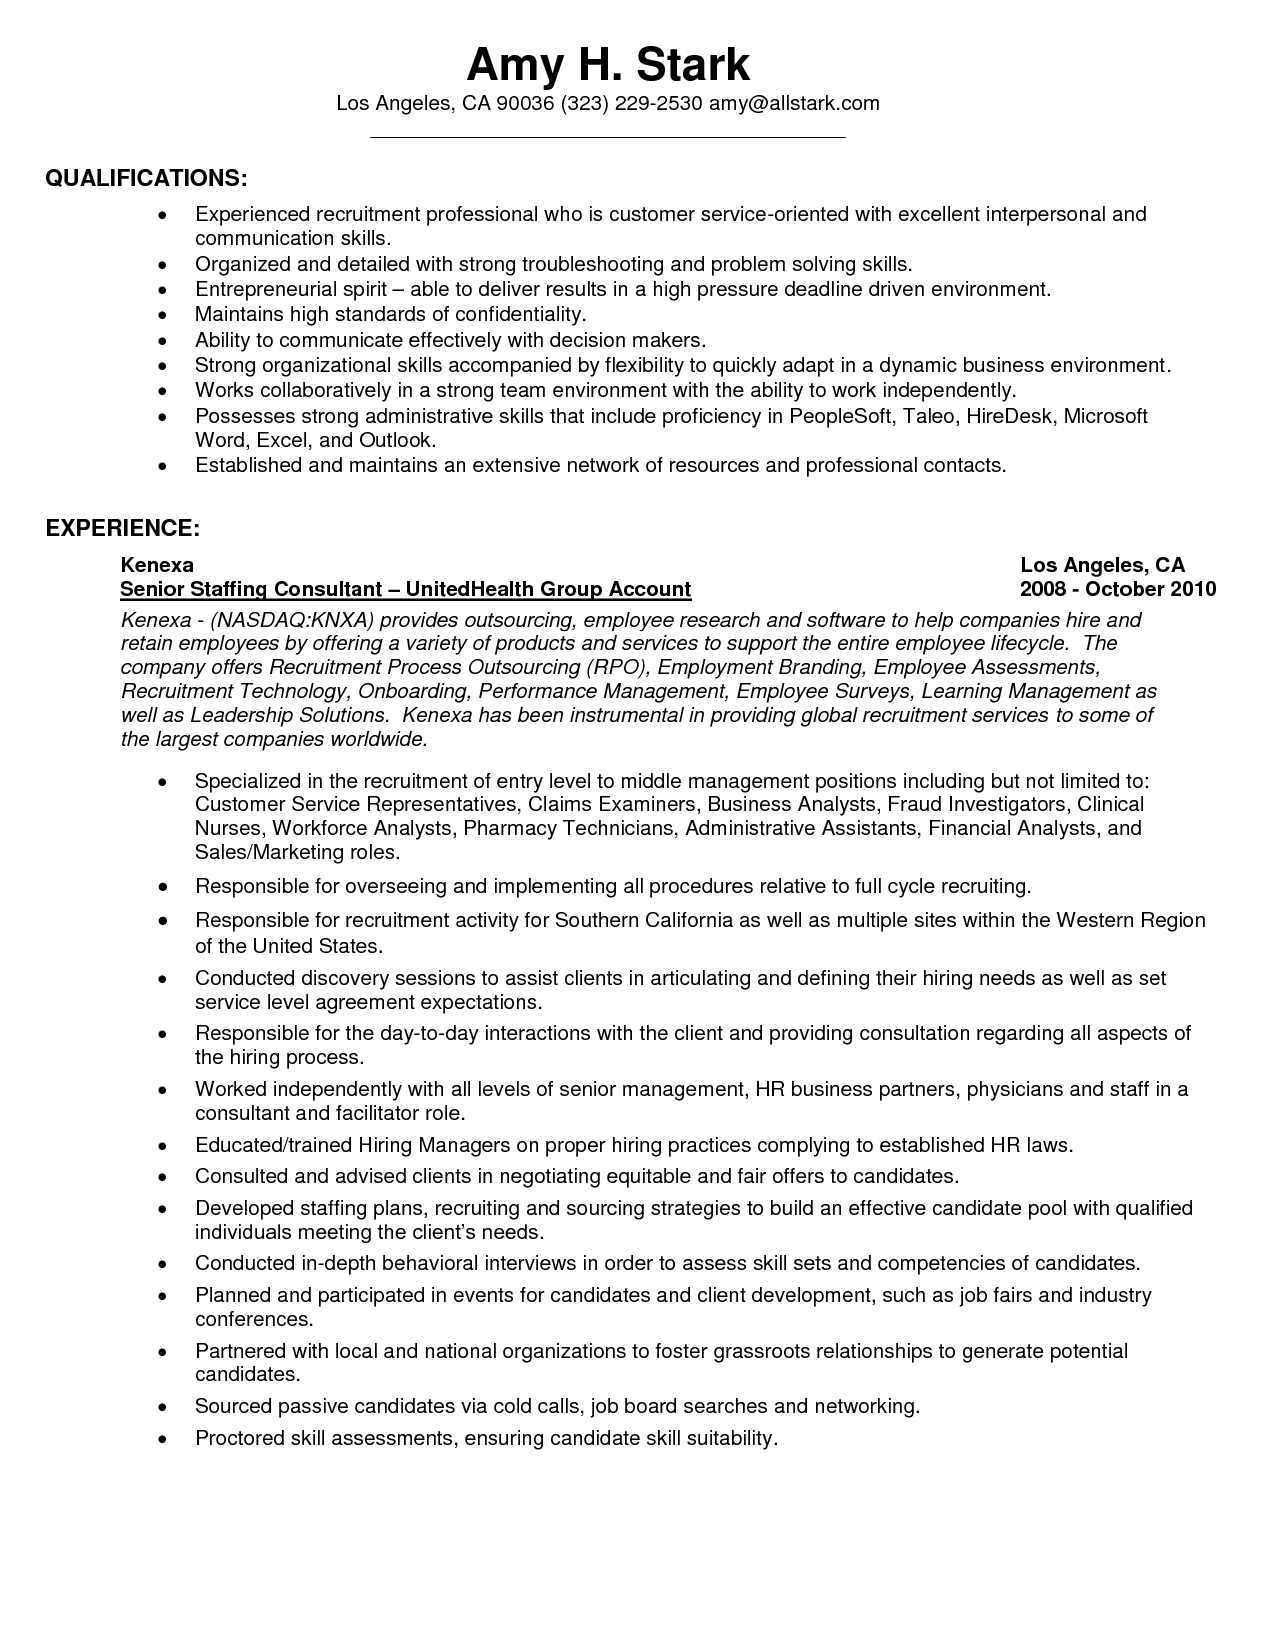 resume Responsible For Resume excellent customer service skills resume sample center resume